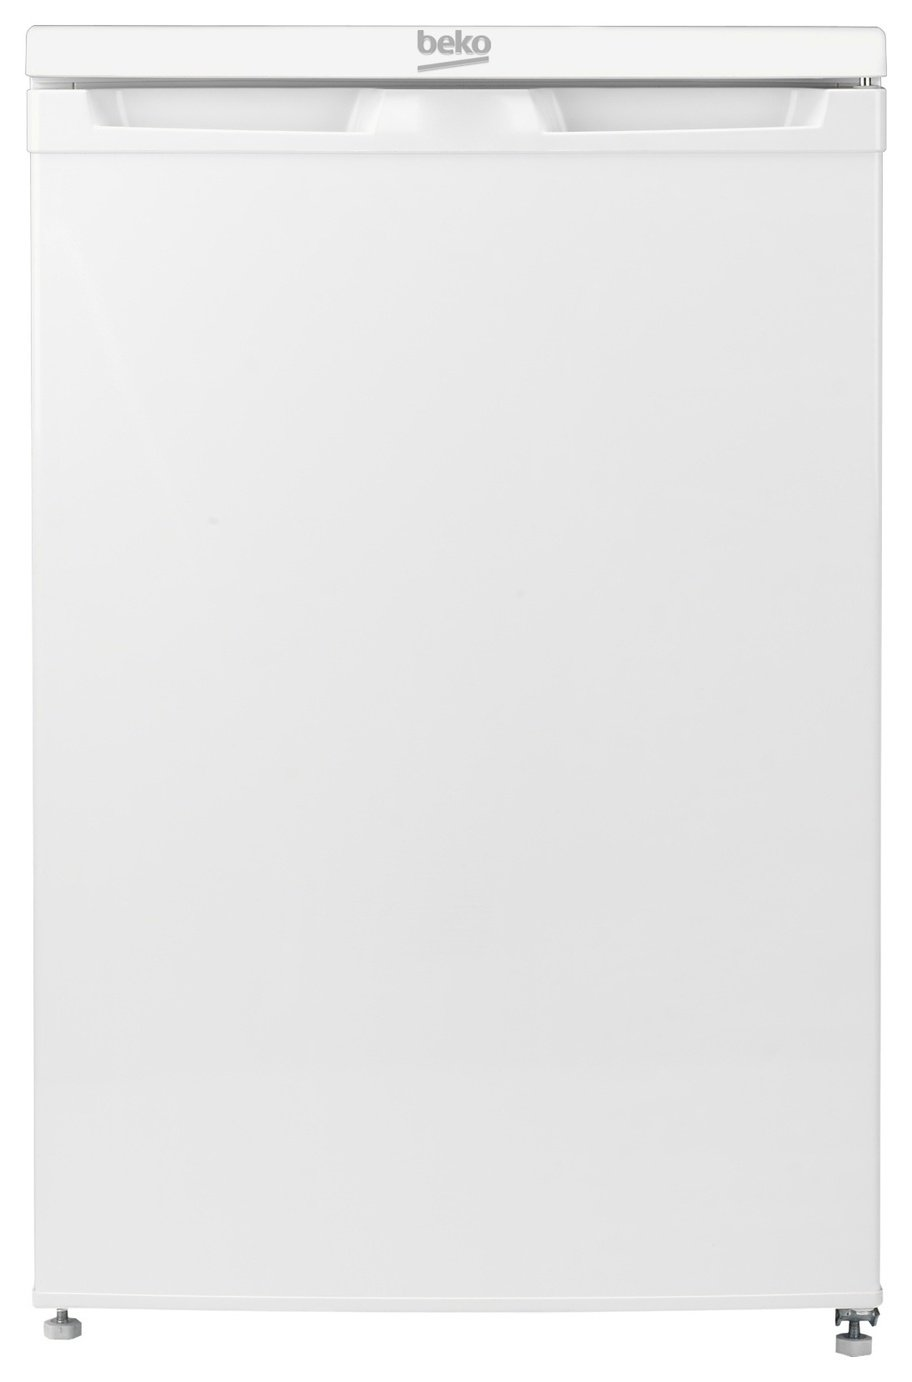 Beko UR584APW Under Counter Fridge - White from Beko